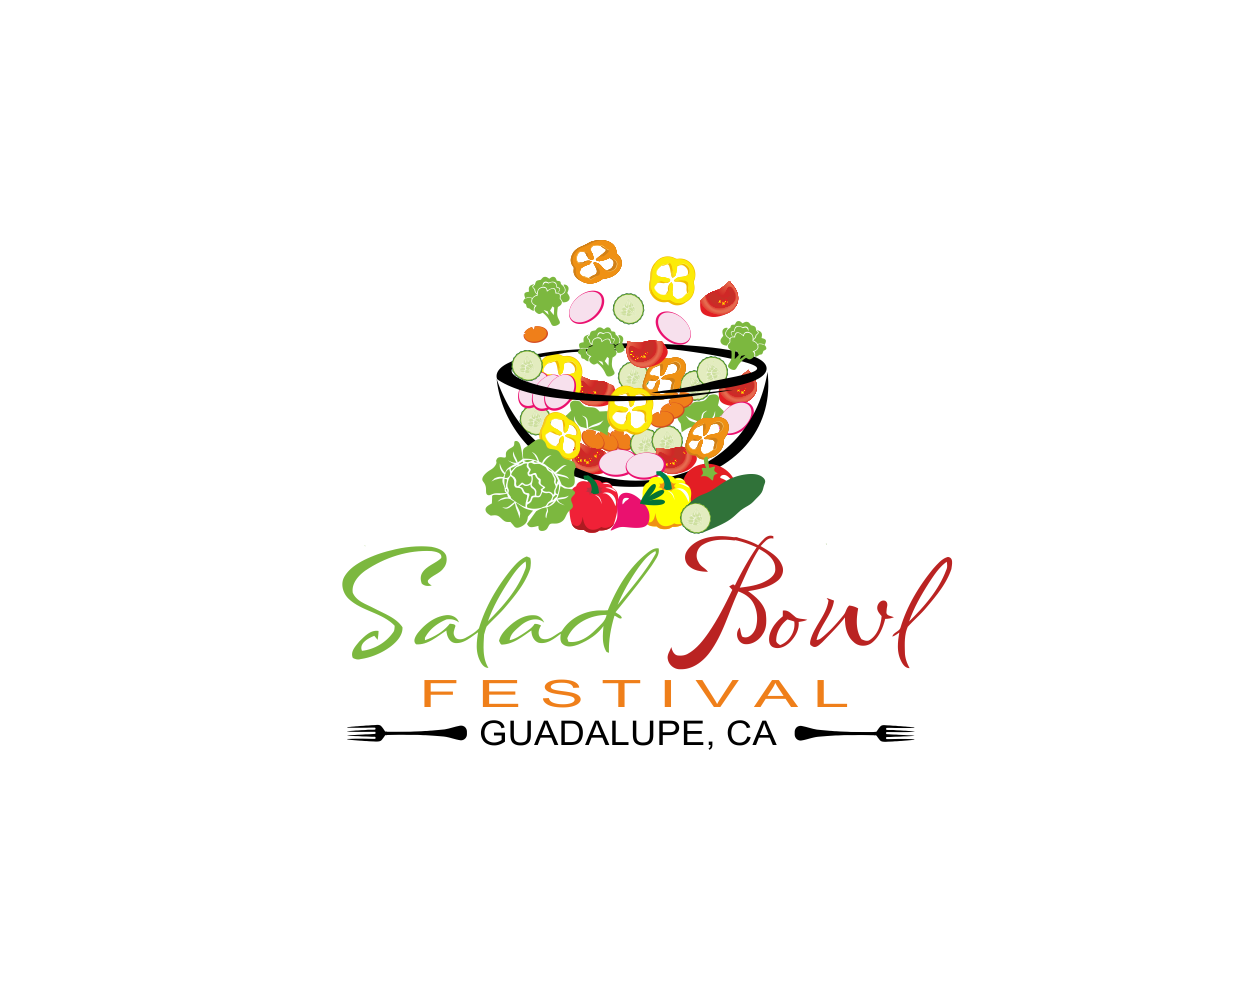 New logo wanted for Salad Bowl Festival